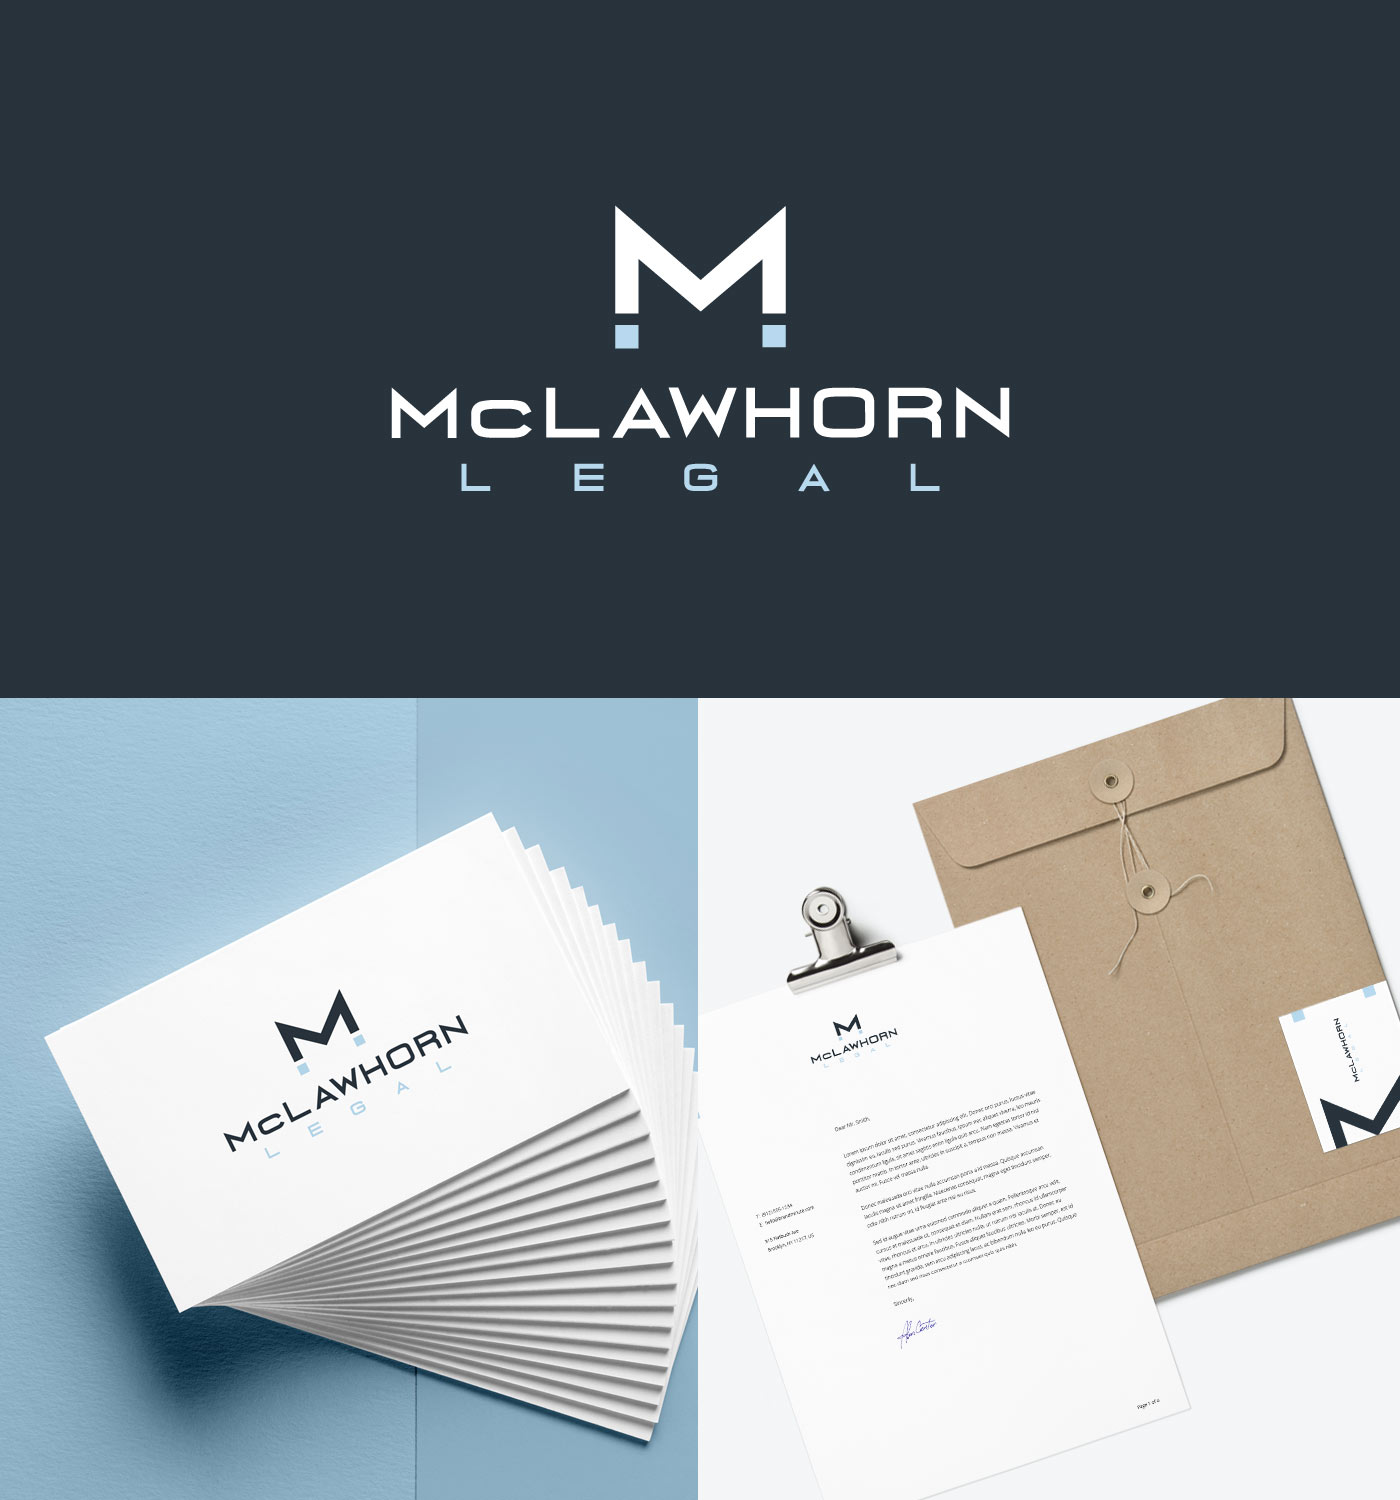 McLawhorn Legal Designed by Beam Local